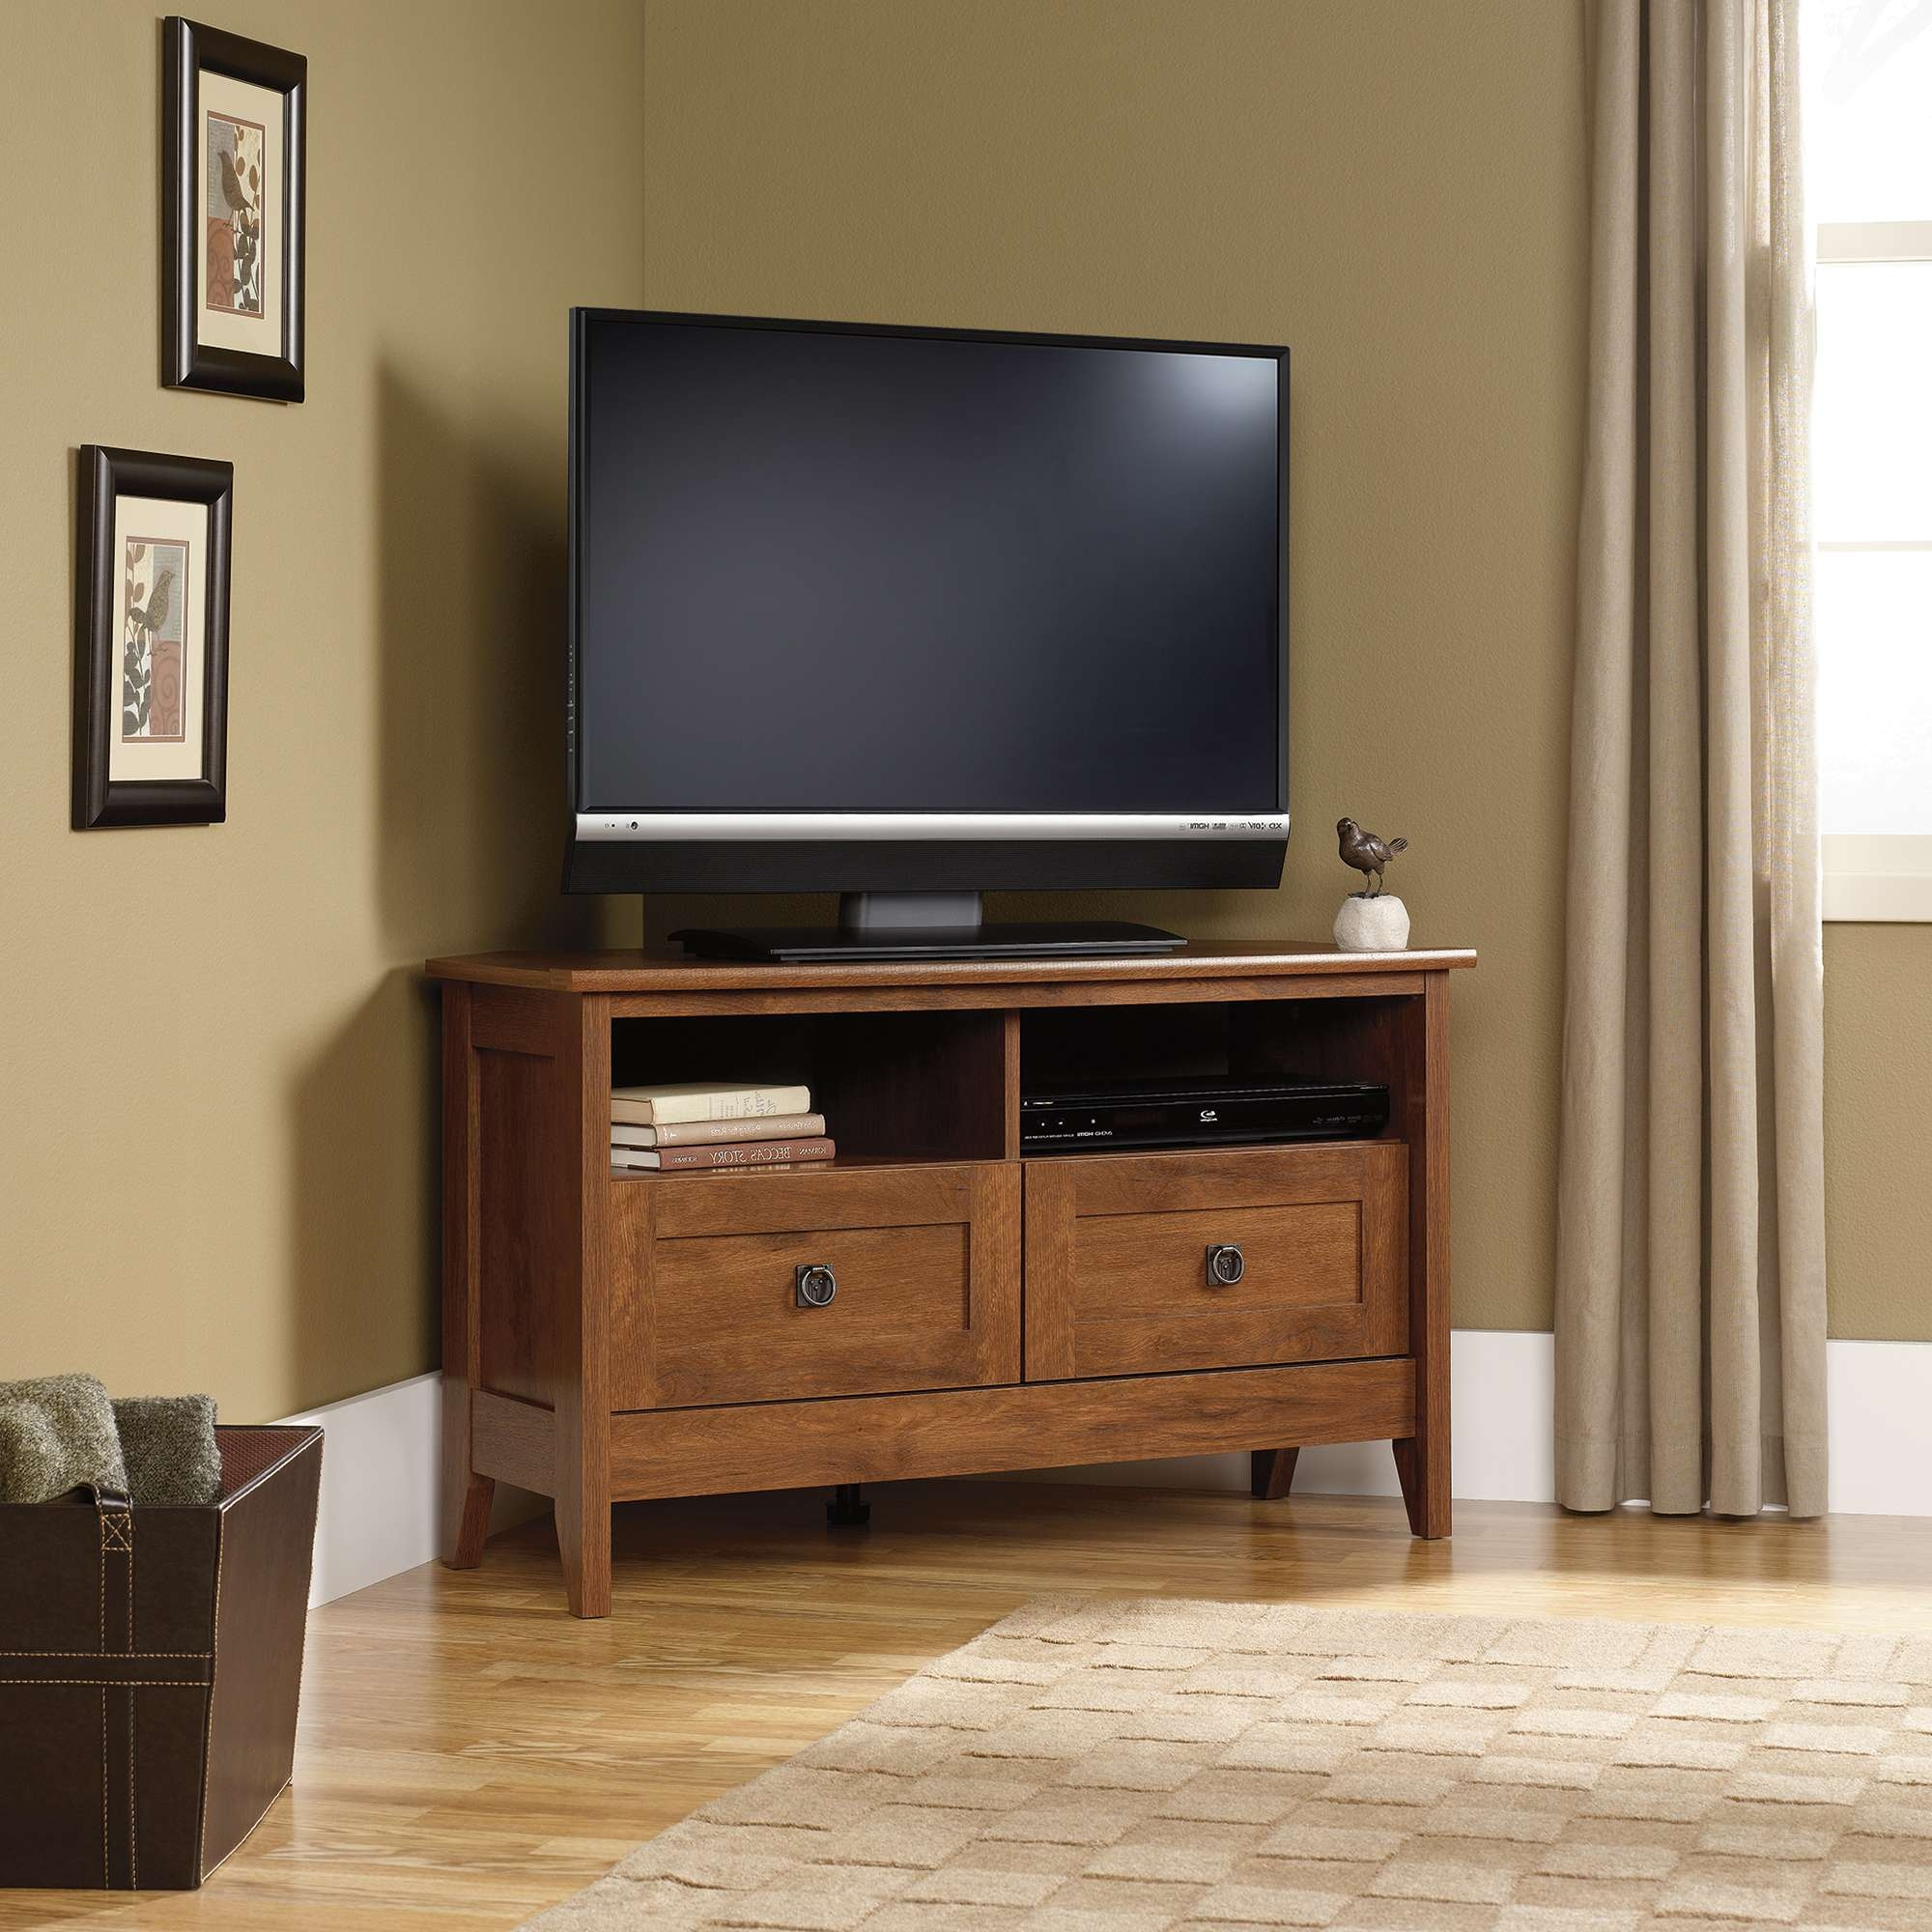 Sauder Select | Corner Tv Stand | 410627 | Sauder With Tv Stands For Corners (View 8 of 20)